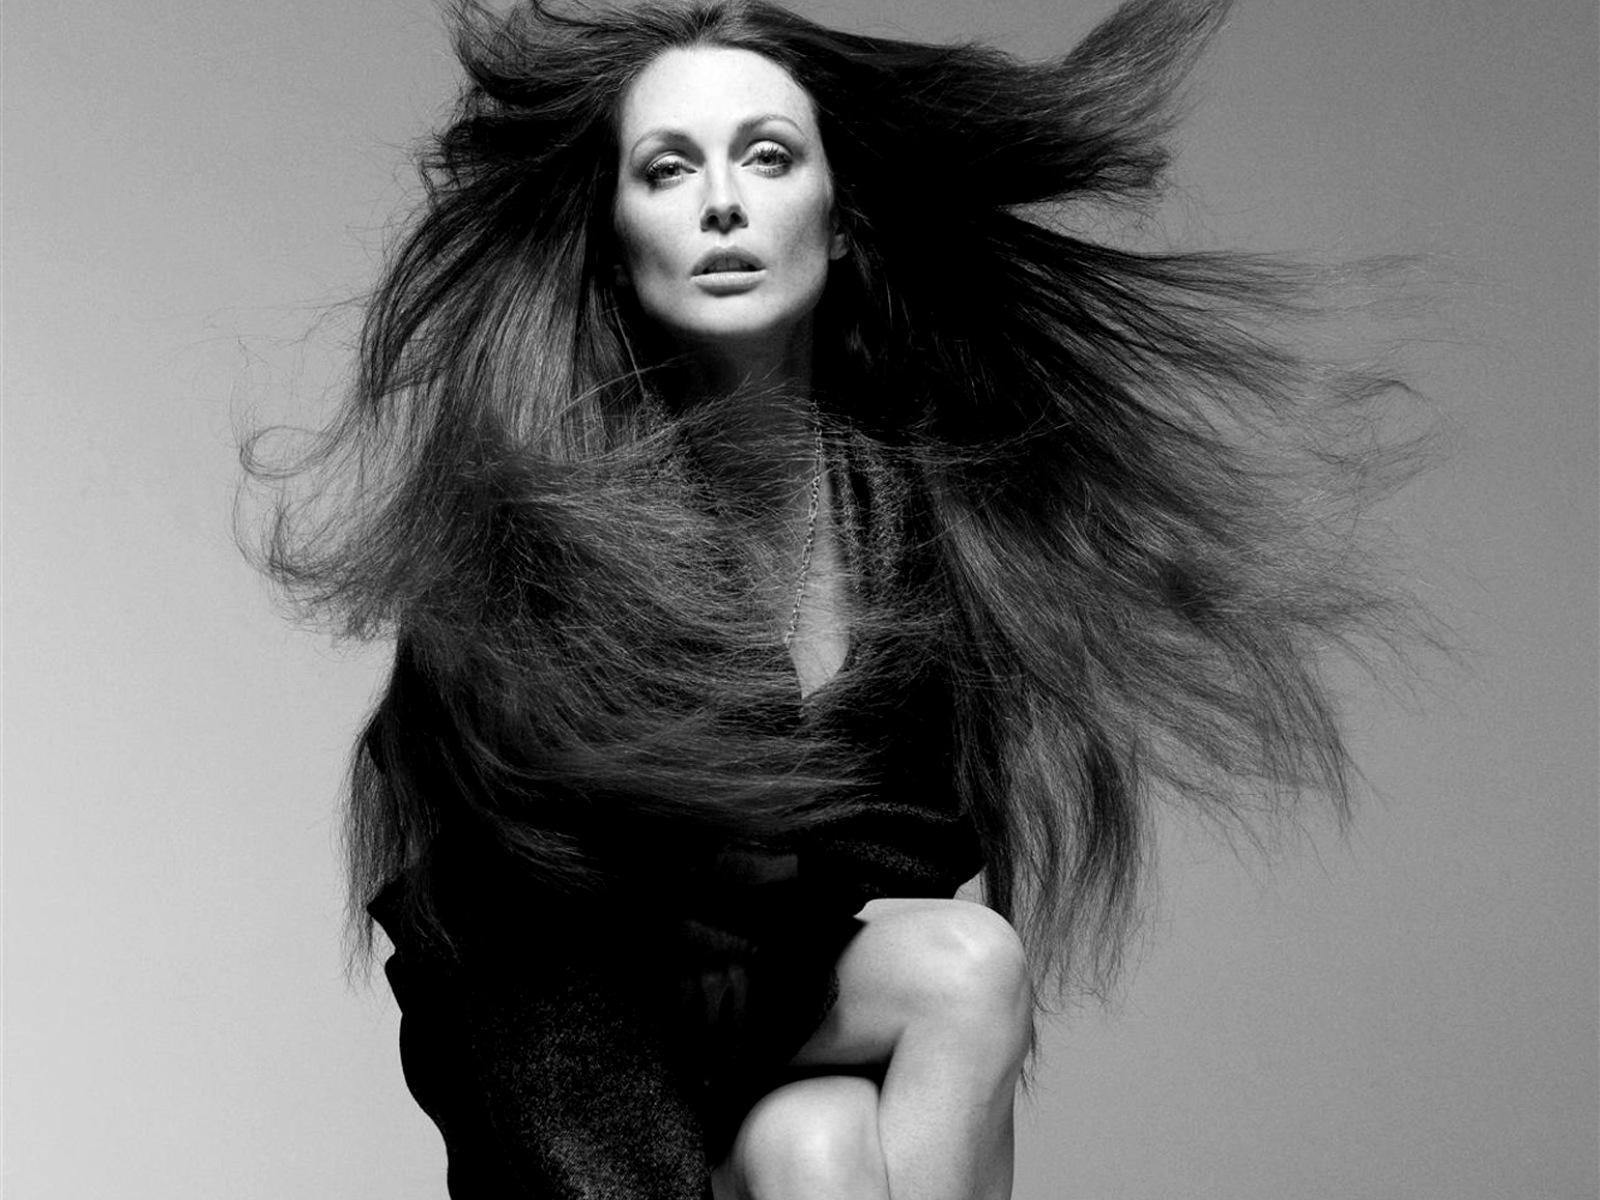 Julianne Moore / Actor